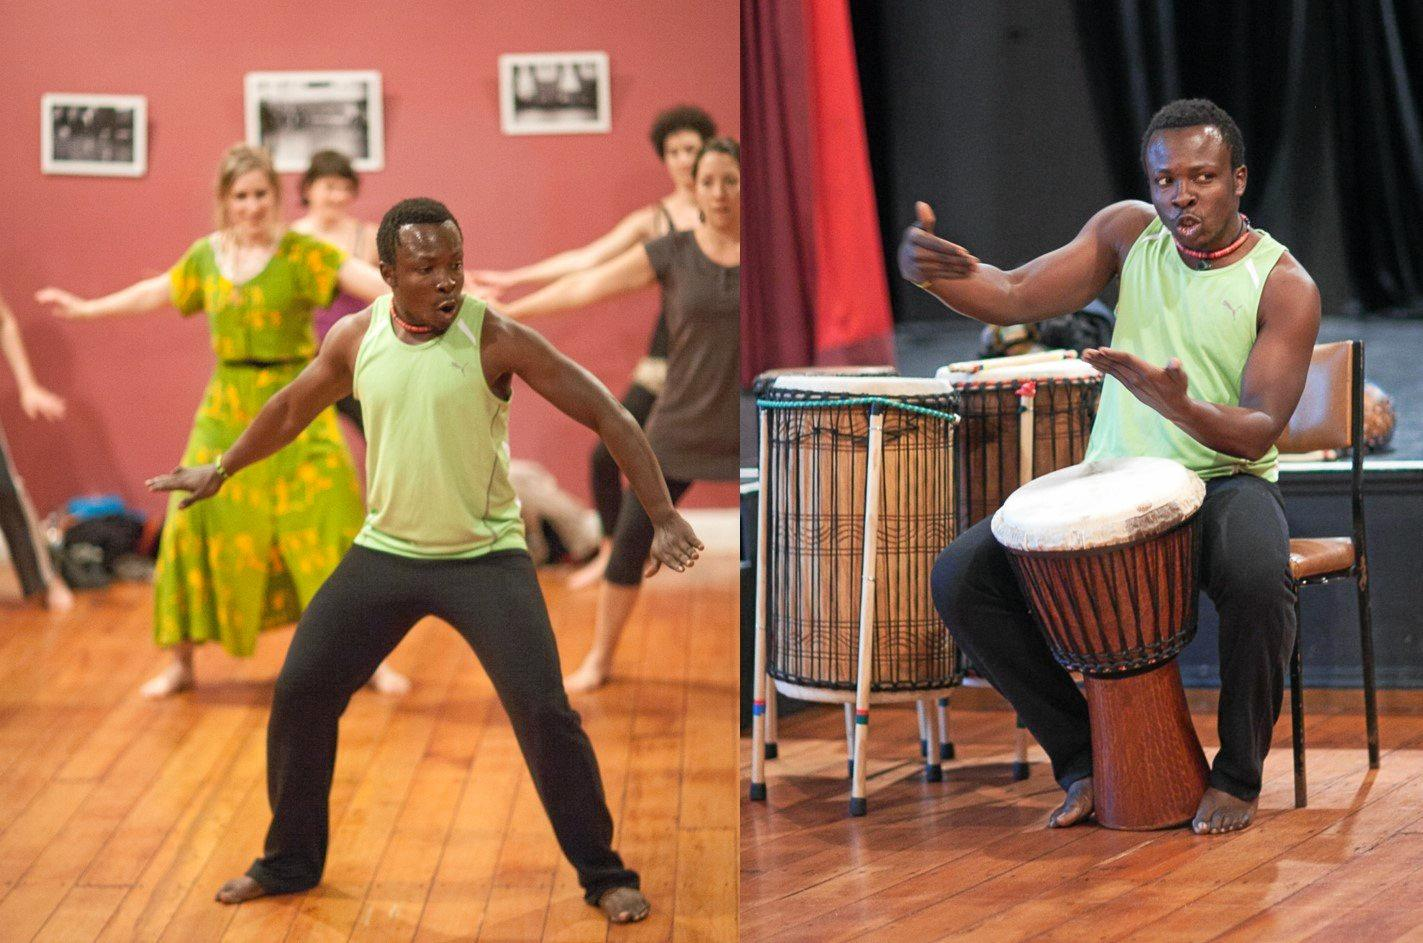 Koffie Fugah will share the history of his culture during the weekend workshop and wants everyone in Hervey Bay to come and experience the power of West African traditional dancing and drumming.